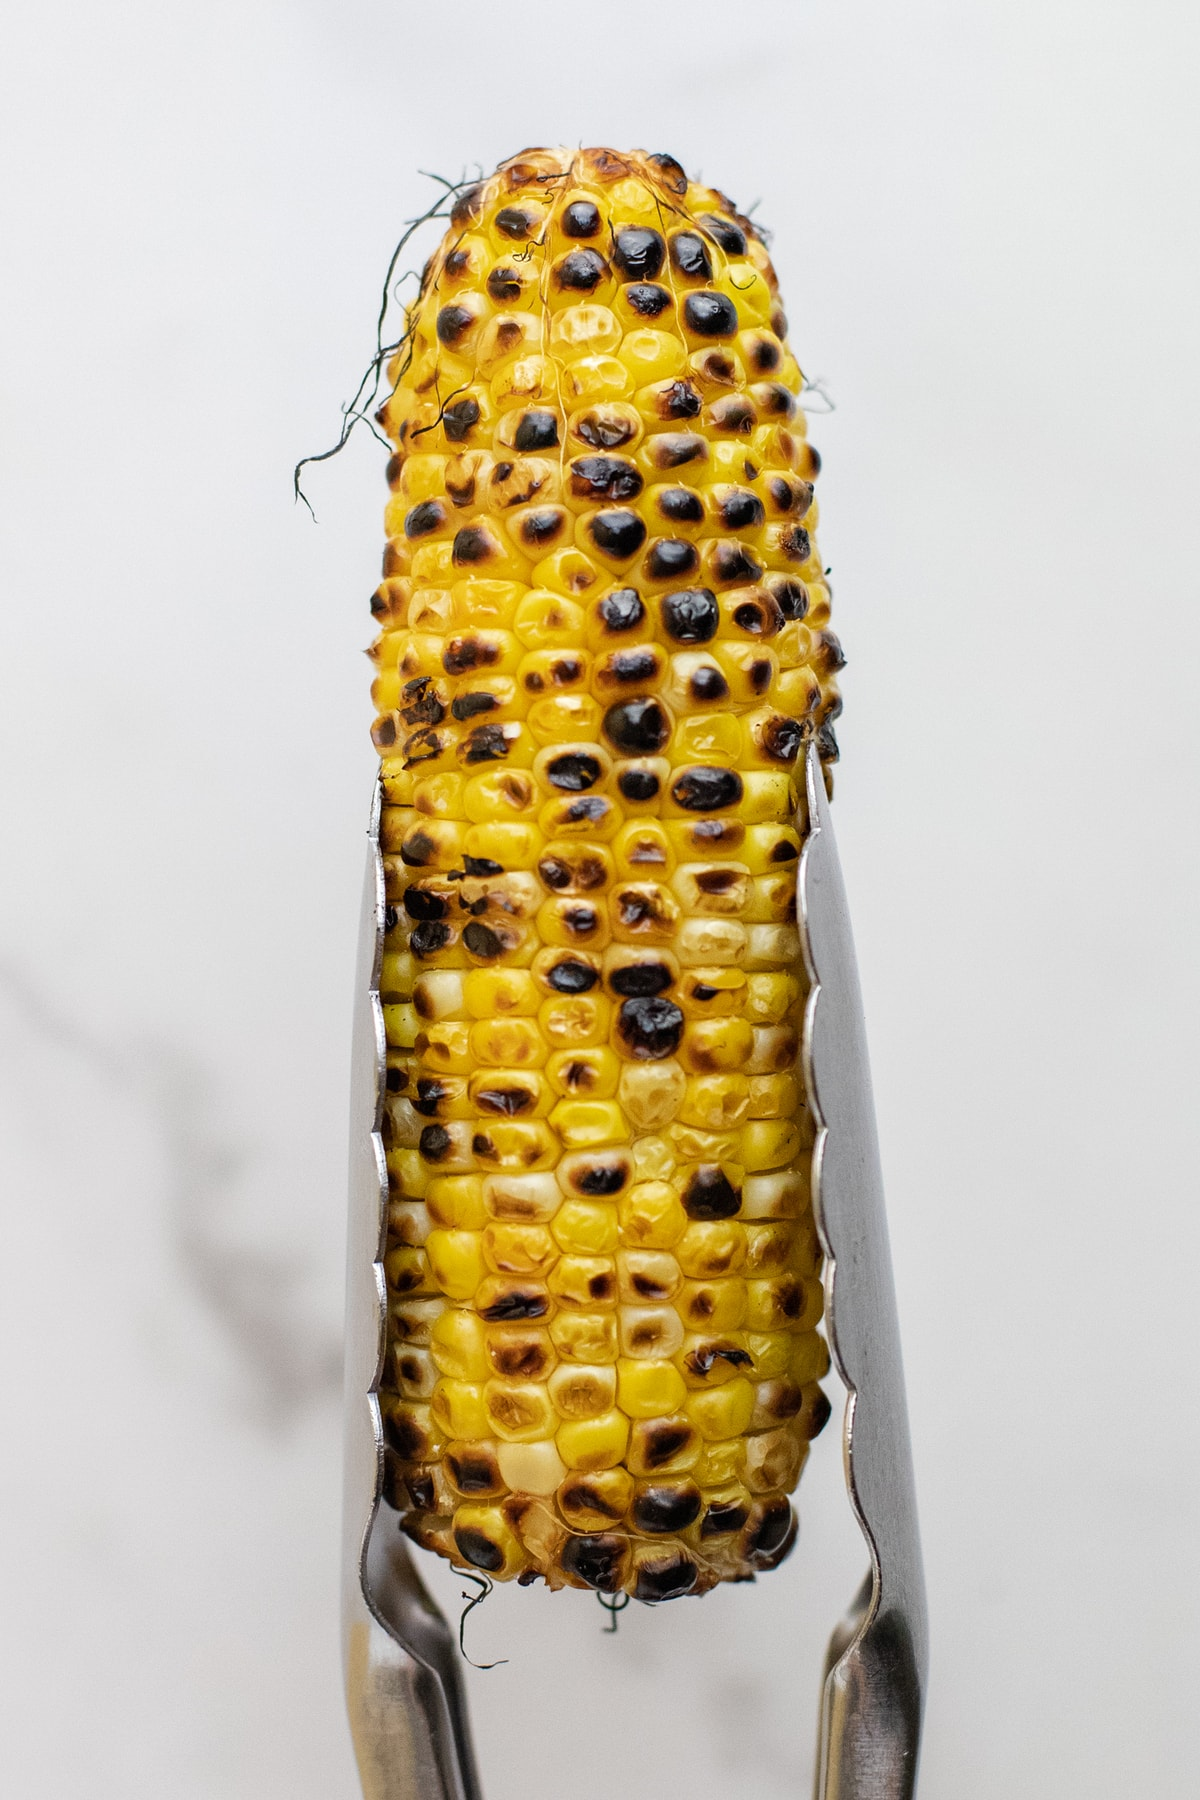 Silvers tongs holding grilled corn over a white background.